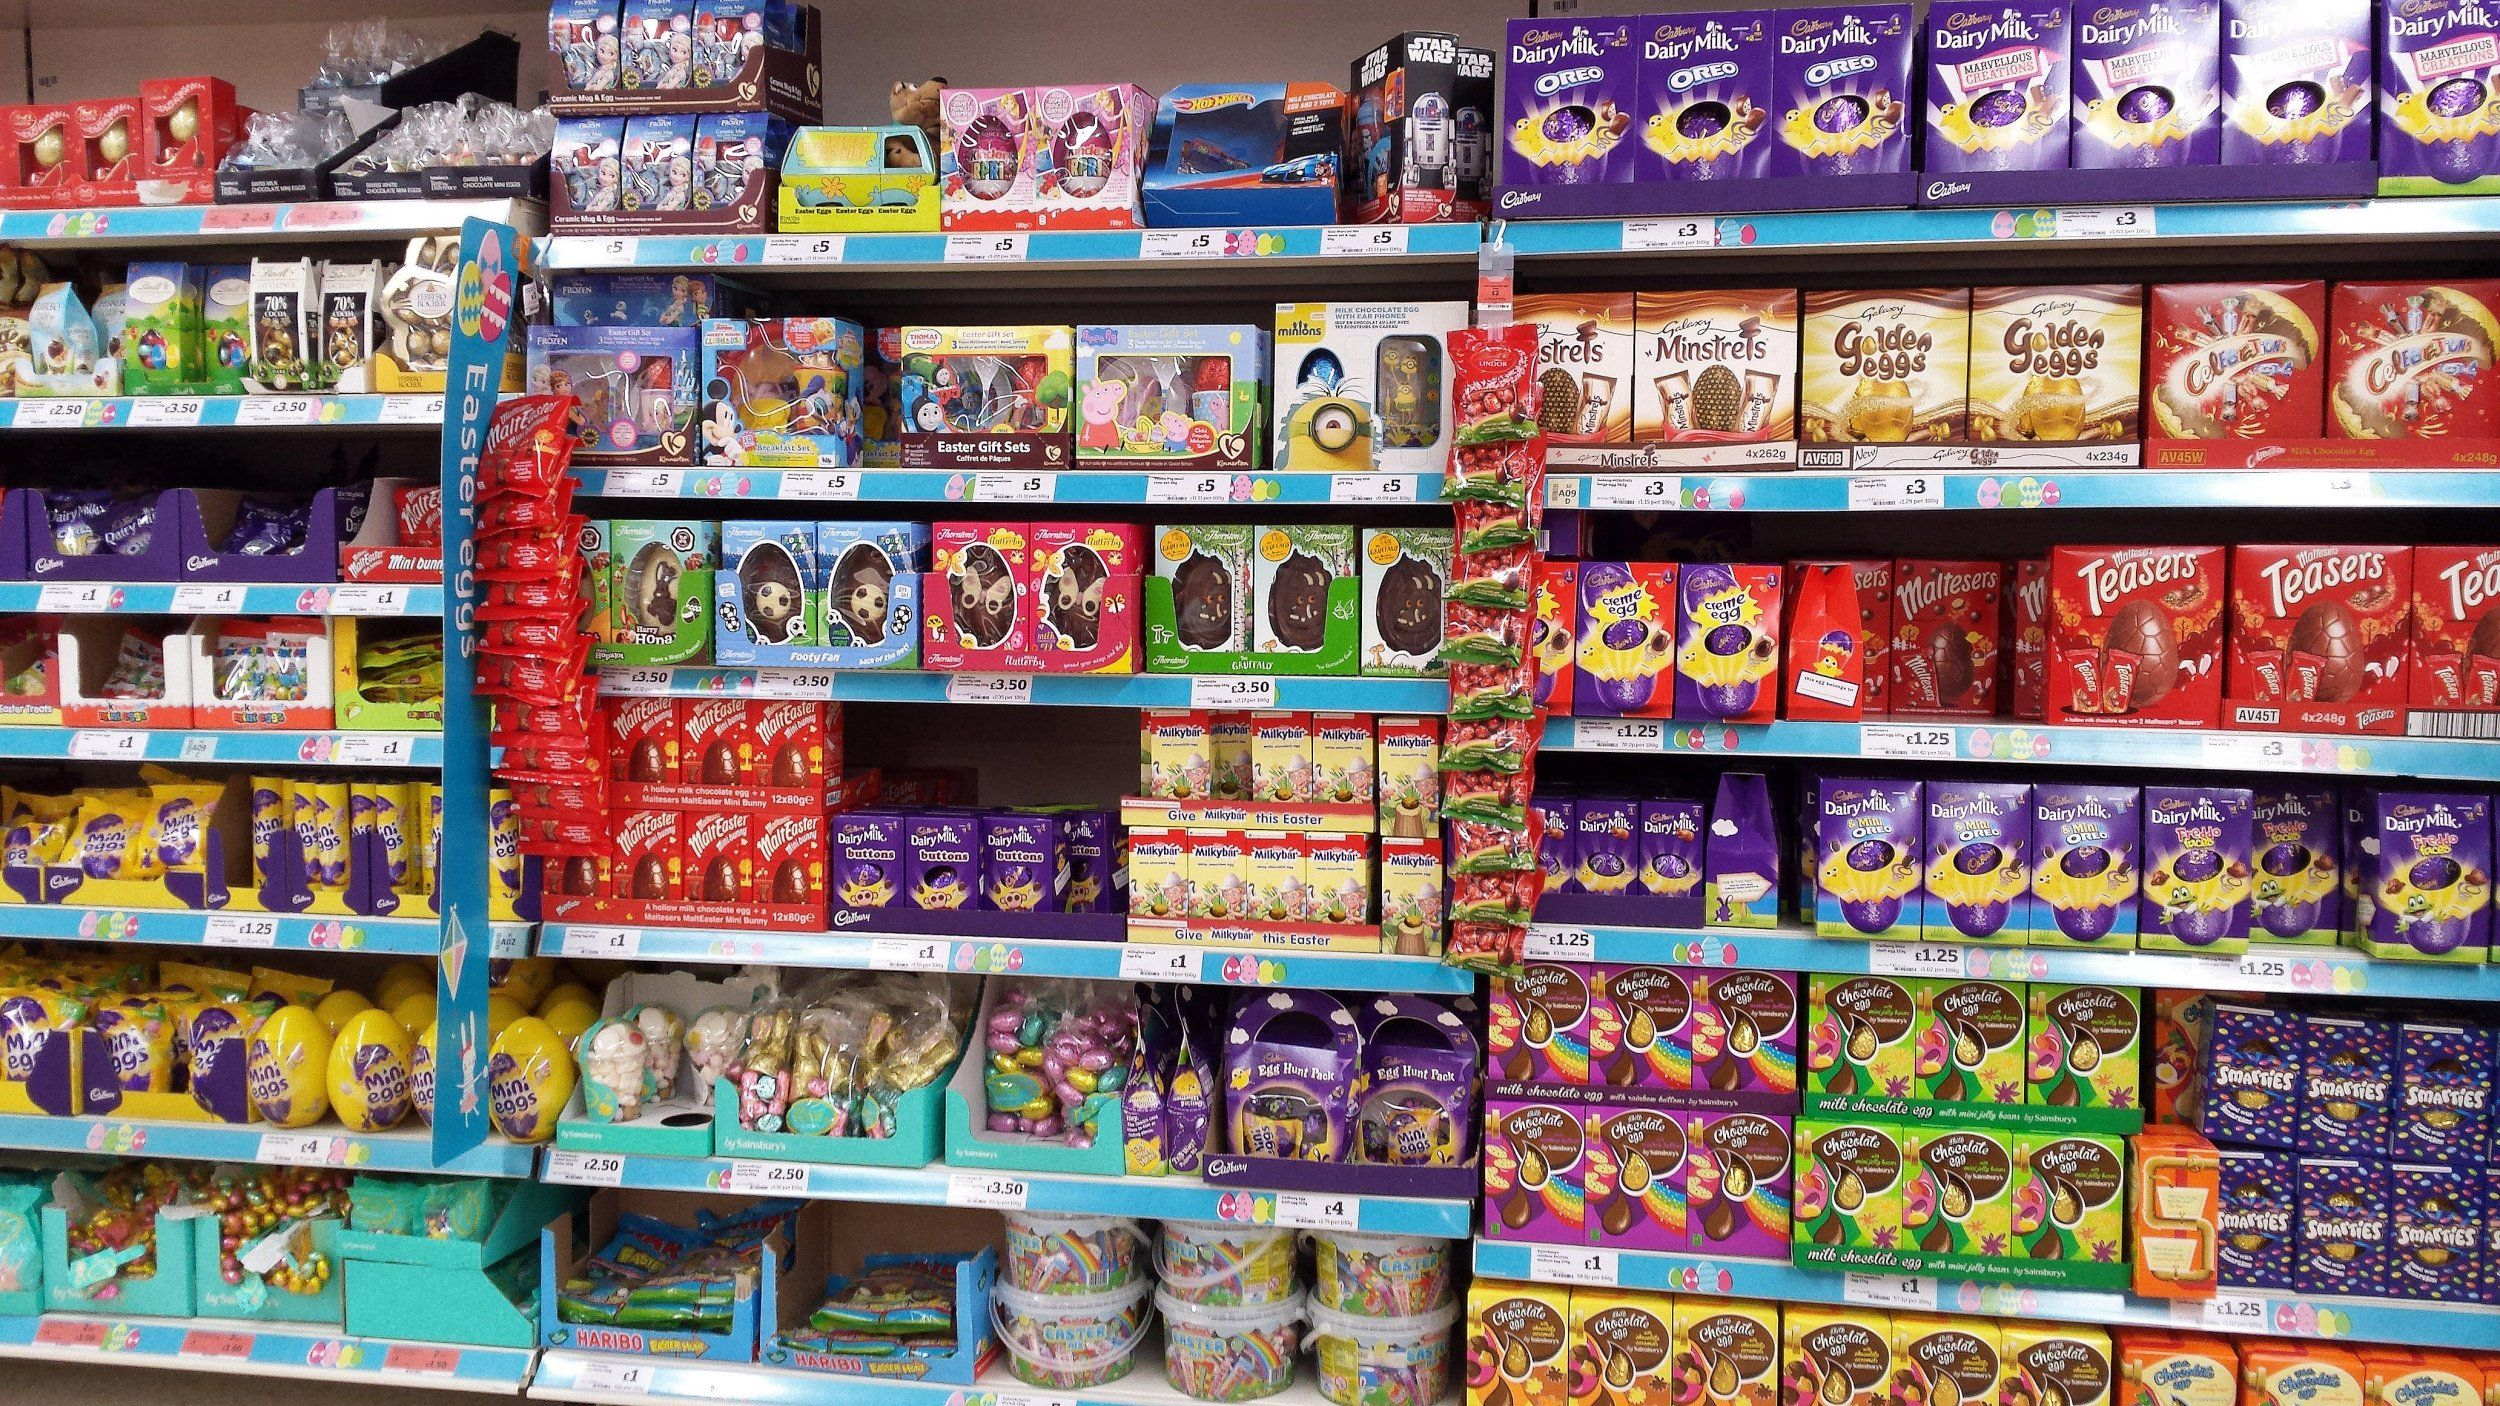 Photo from: http://happy-easter.info/wp-content/uploads/Pics/01/Chocolate%20Easter%20Eggs%20Uk%20(05).jpg